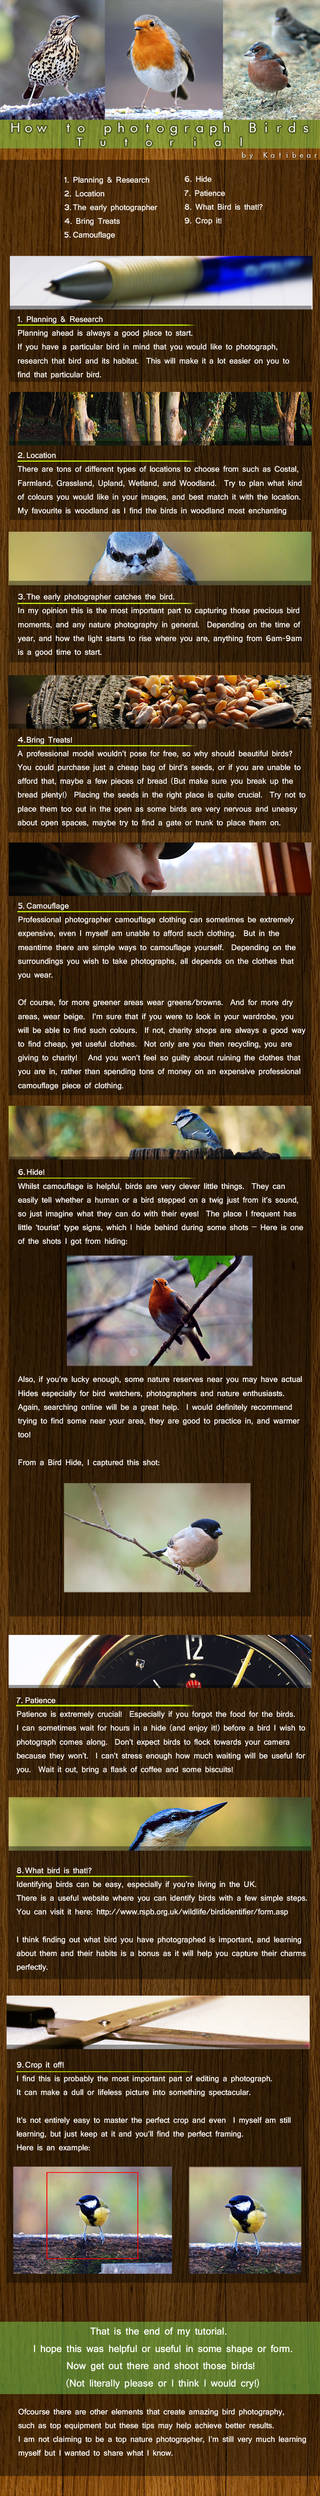 How to  Photograph Birds Tut.